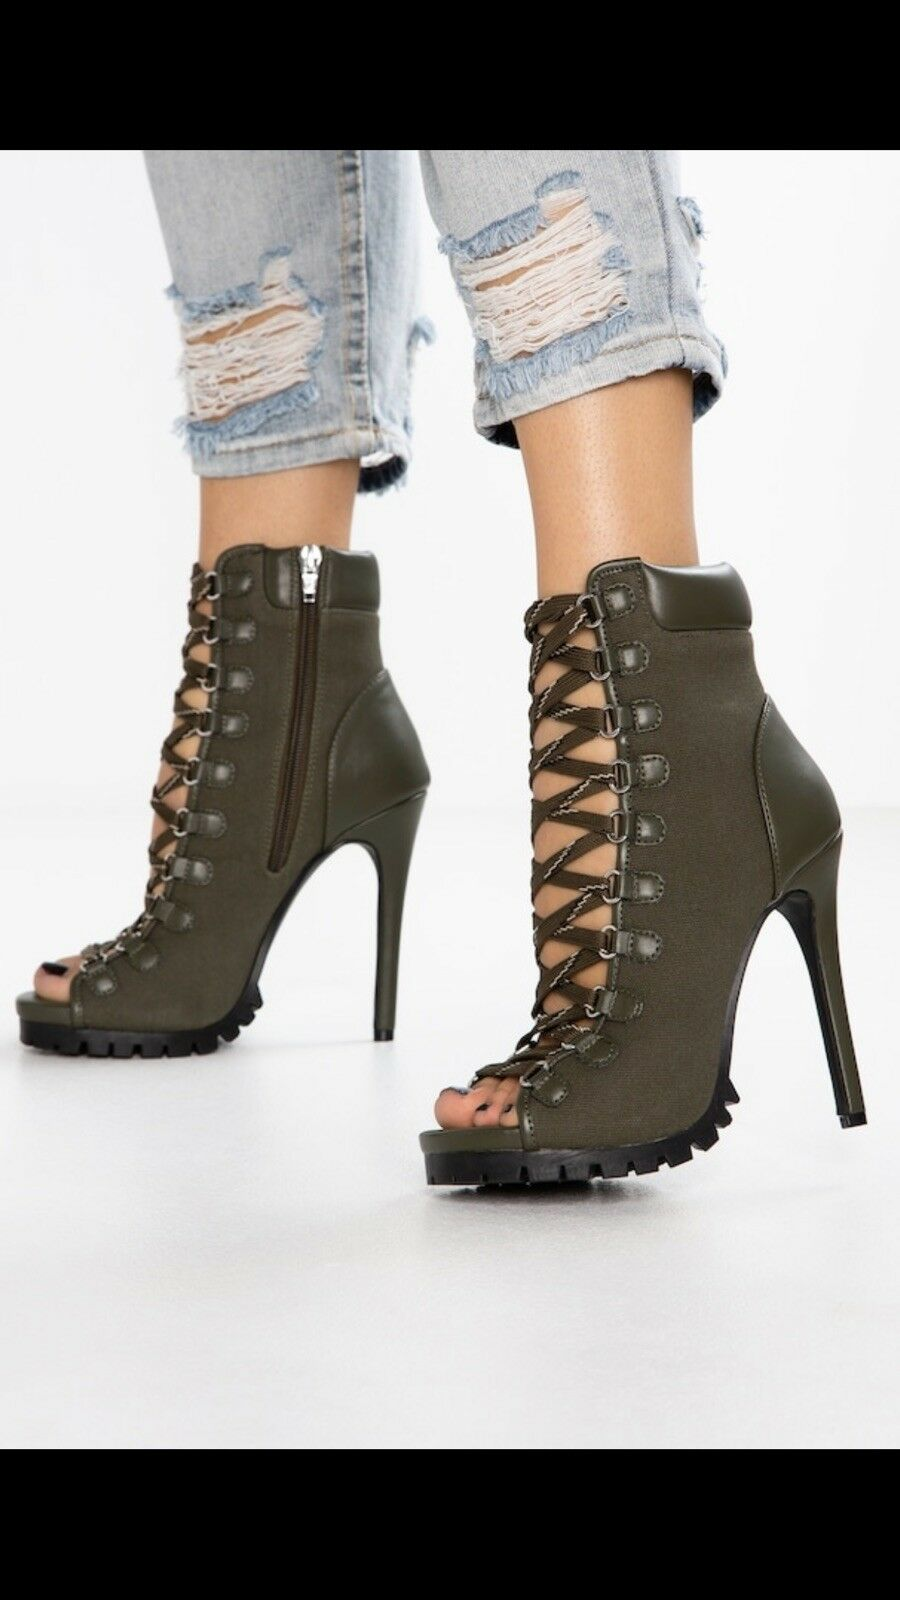 New Steve Madden Fearless Lace Up Booties Size 6.5 Green